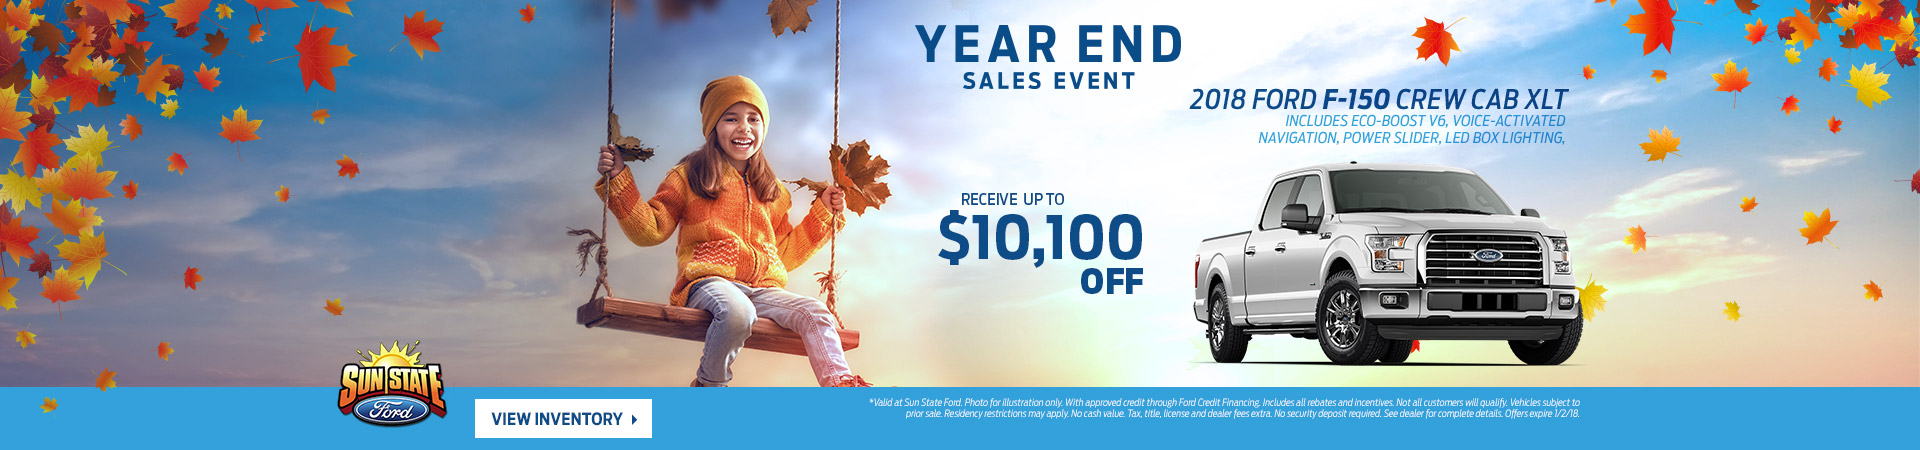 SunStateFord-SummerSalesEvent-1920x450-F150